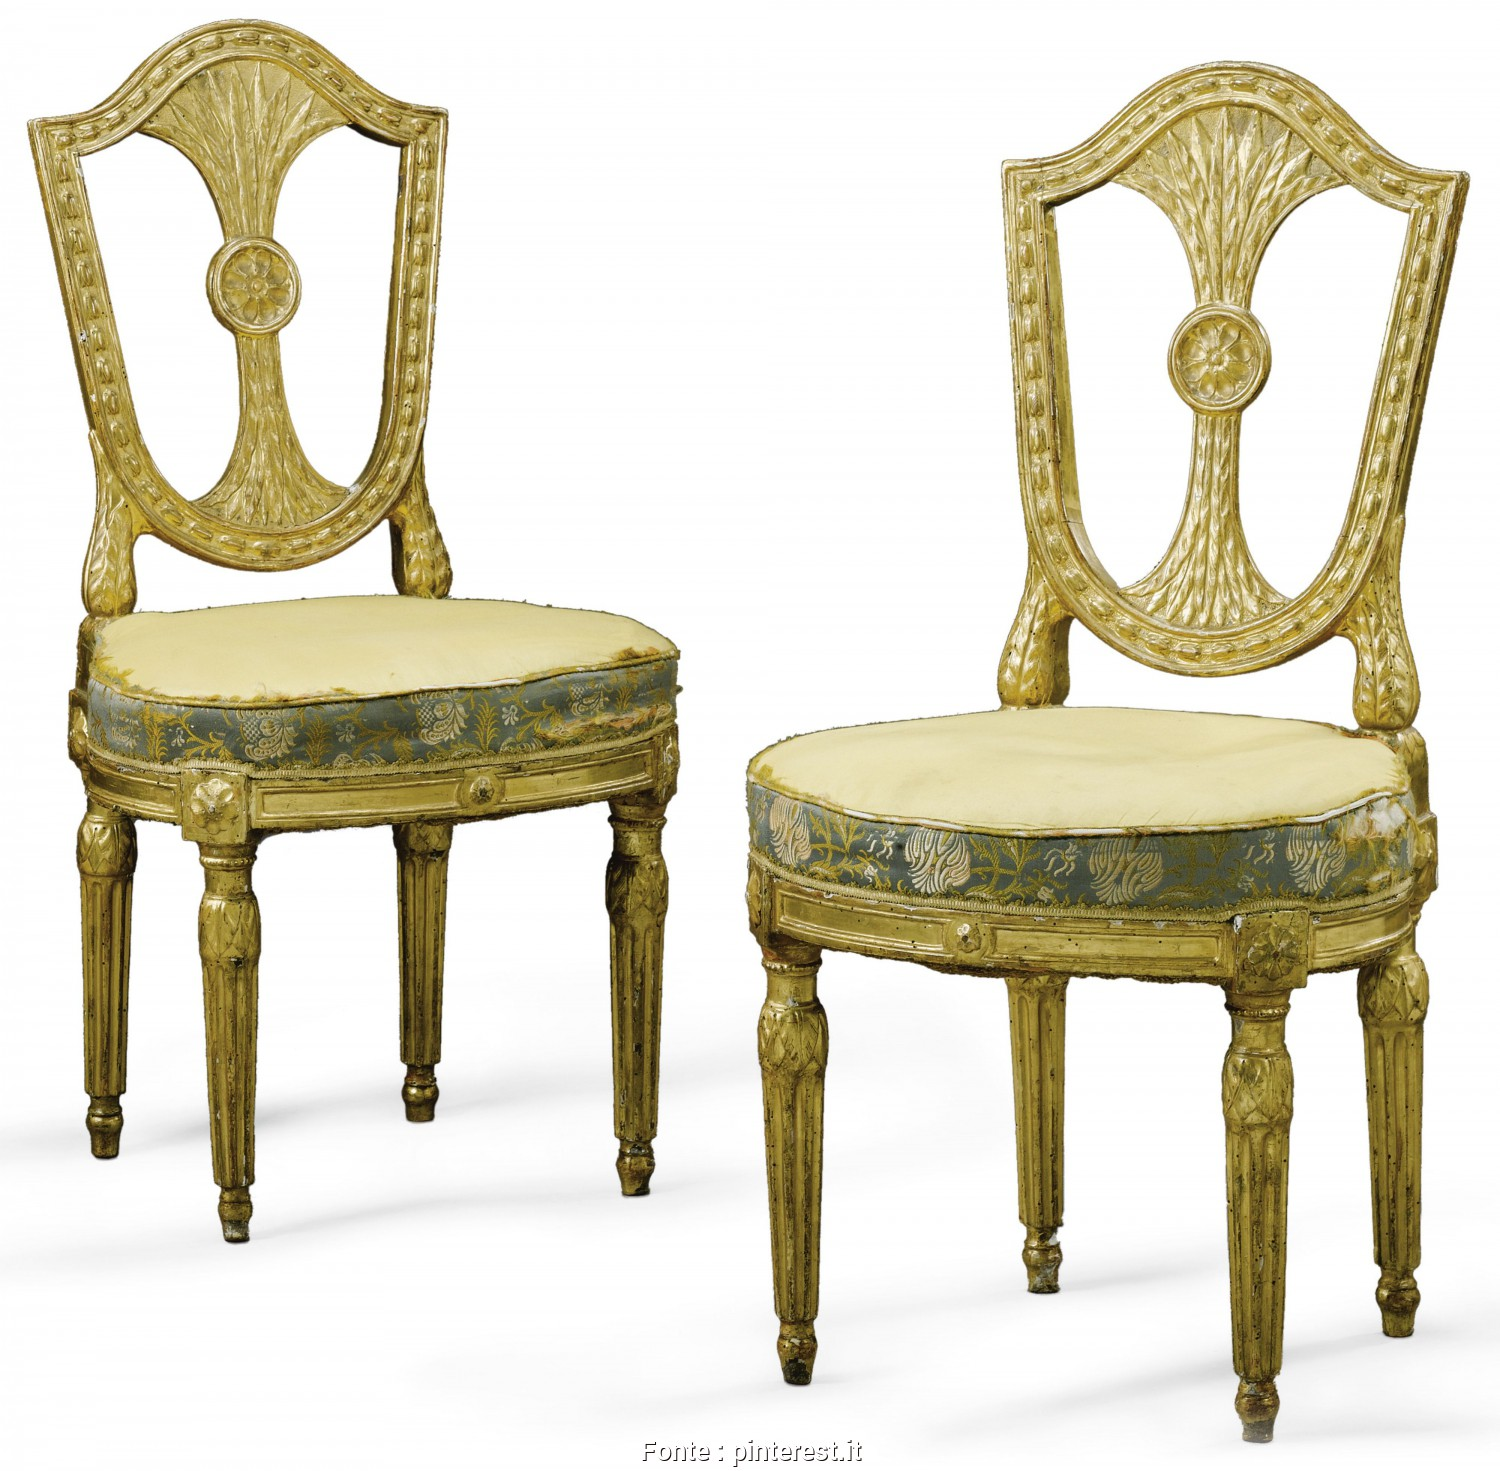 Divano Antico Stile Impero, Incredibile A Pair Of Italian Carved Giltwood Chairs, Roman, Late 18Th Century